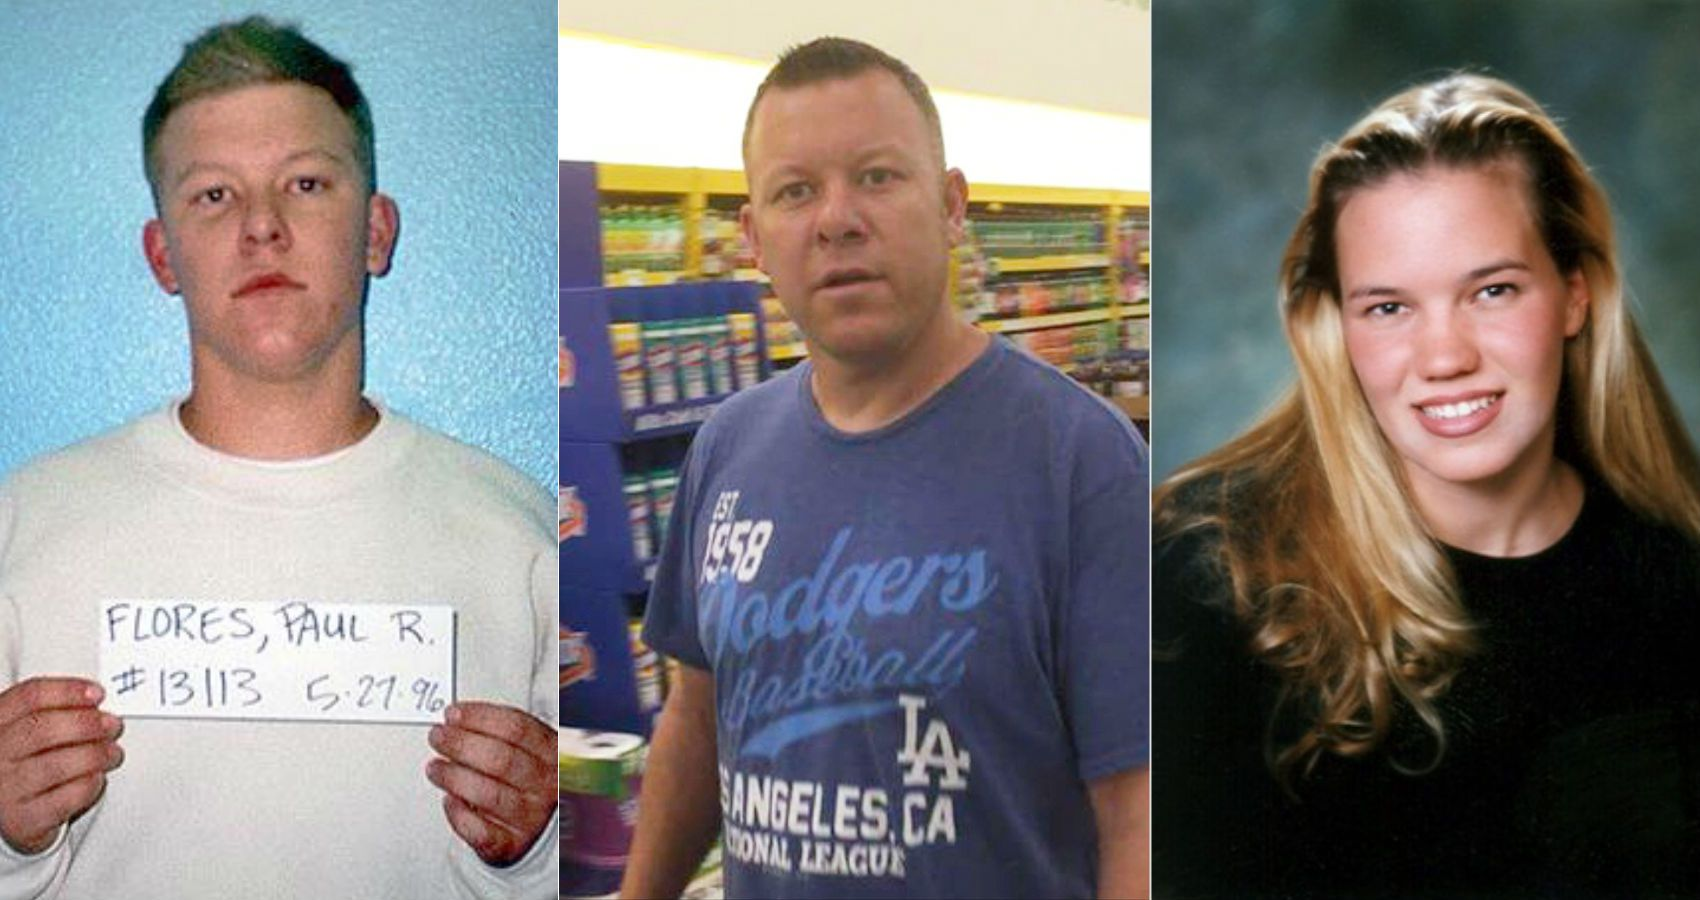 What Do We Know About Alleged Kristin Smart Killer Paul Flores